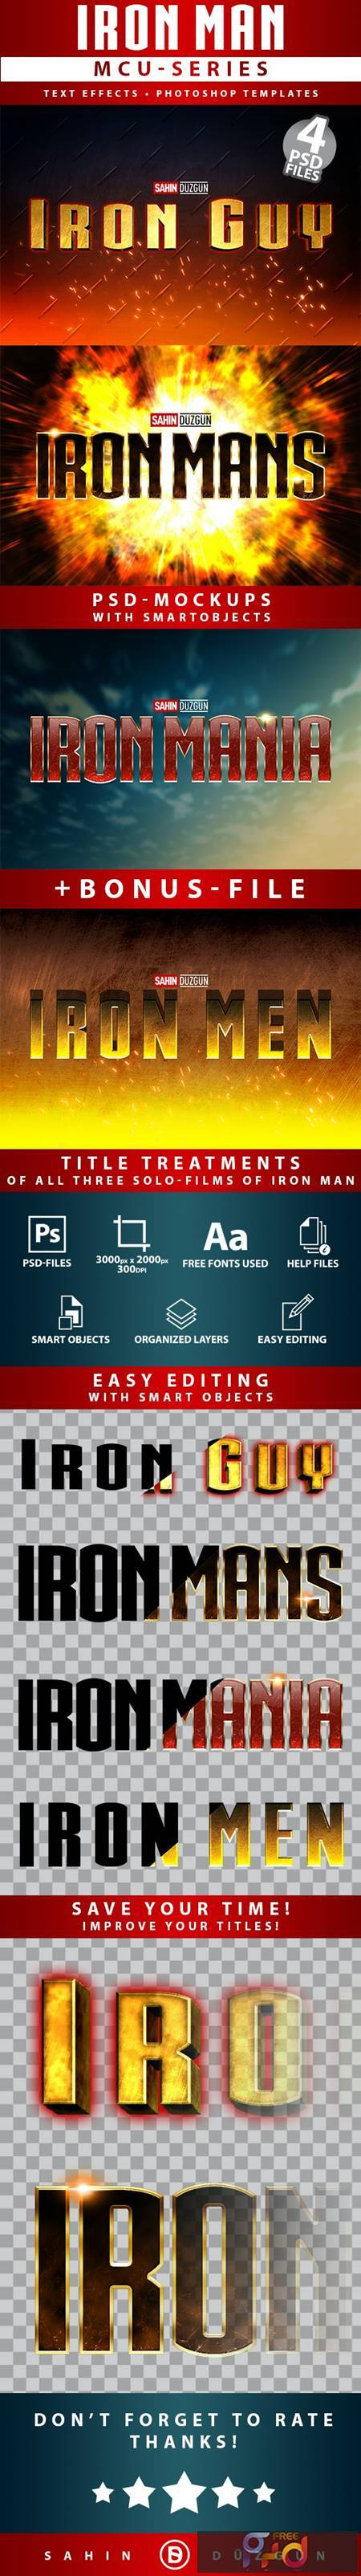 IRON MAN - MCU-Film Series - Text-Effects-Mockups - Template-Package 26615003 1